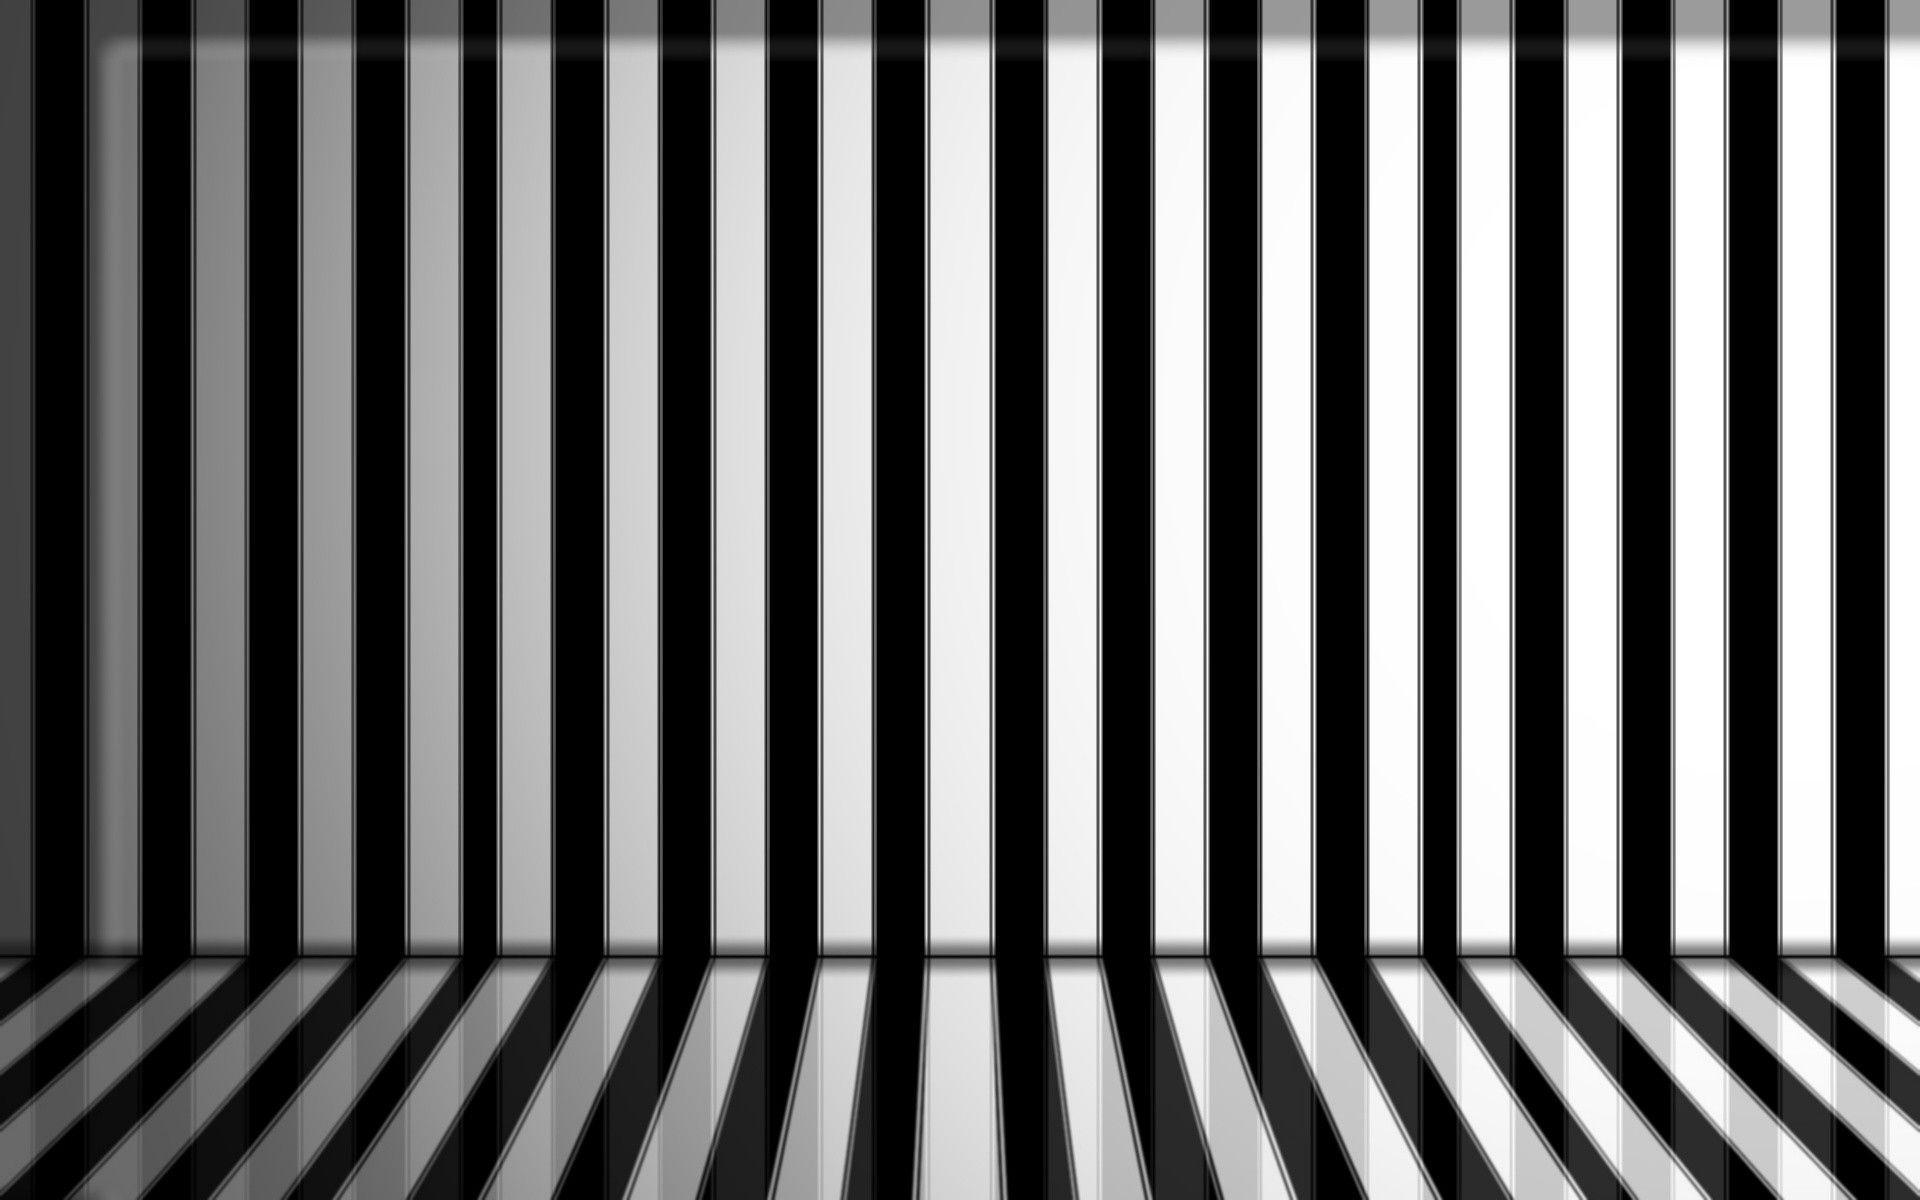 zebra stripe wallpaper stuff - photo #7